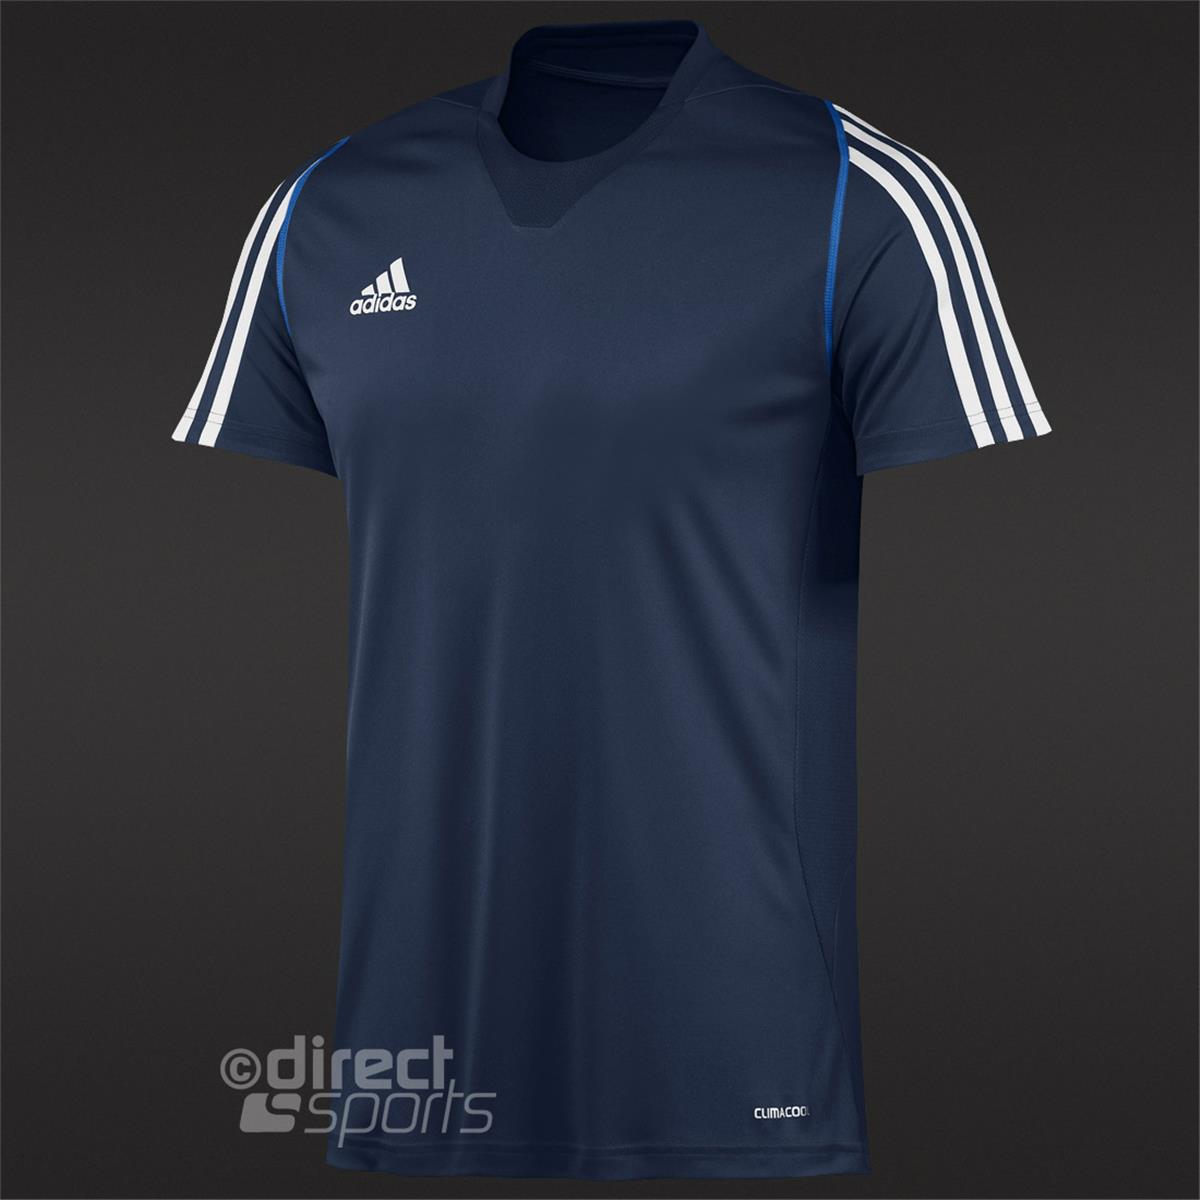 dirt cheap catch buy popular buy>adidas t shirt sport men